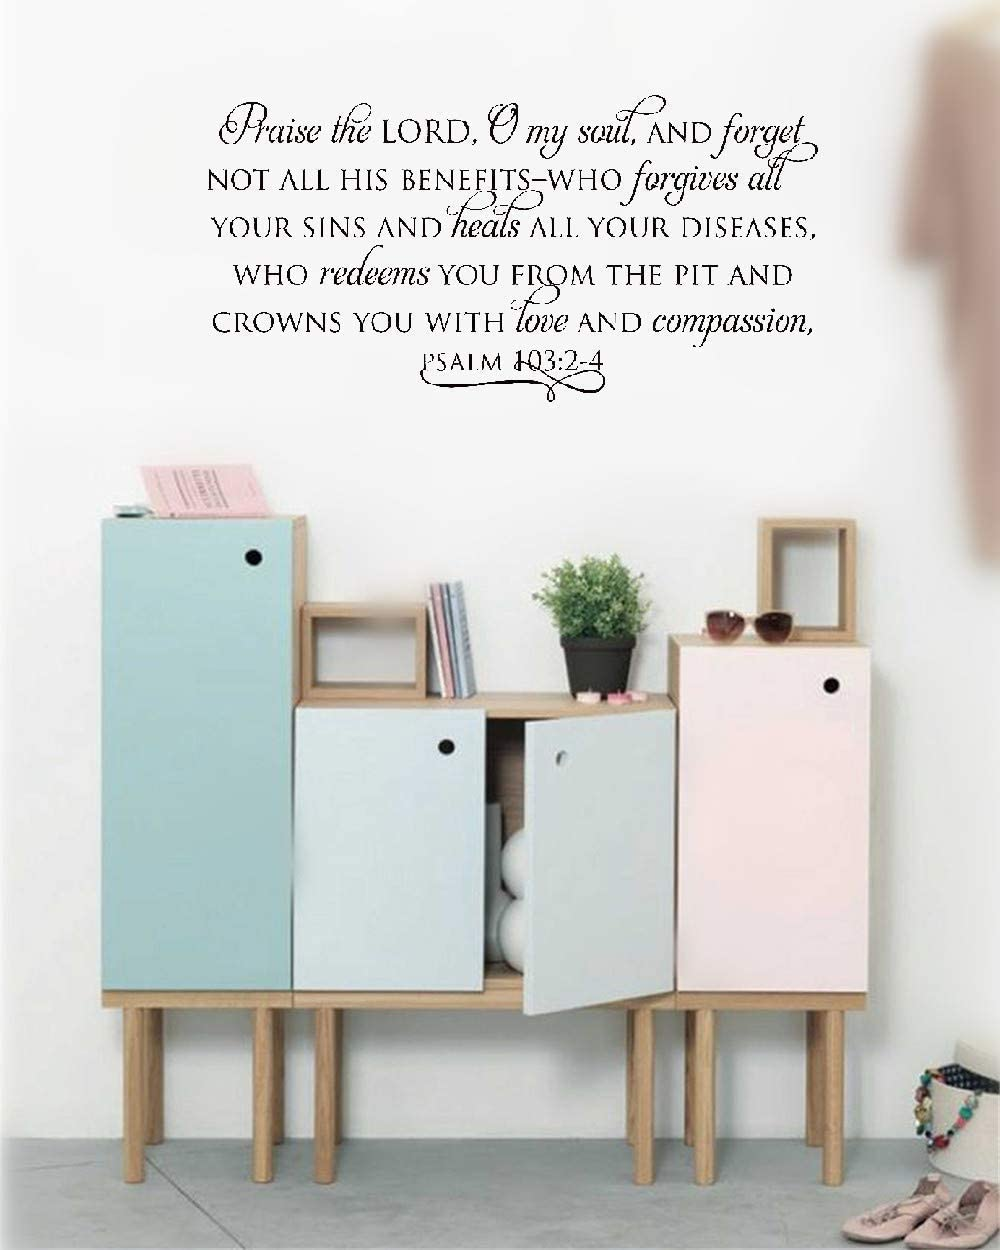 Wall Stickers Inspiring Quotes Home Art Decor Decal Mural Praise The Lord, O My Soul - Psalm 103:2-4 for Kids Nursery Bedroom Living Room